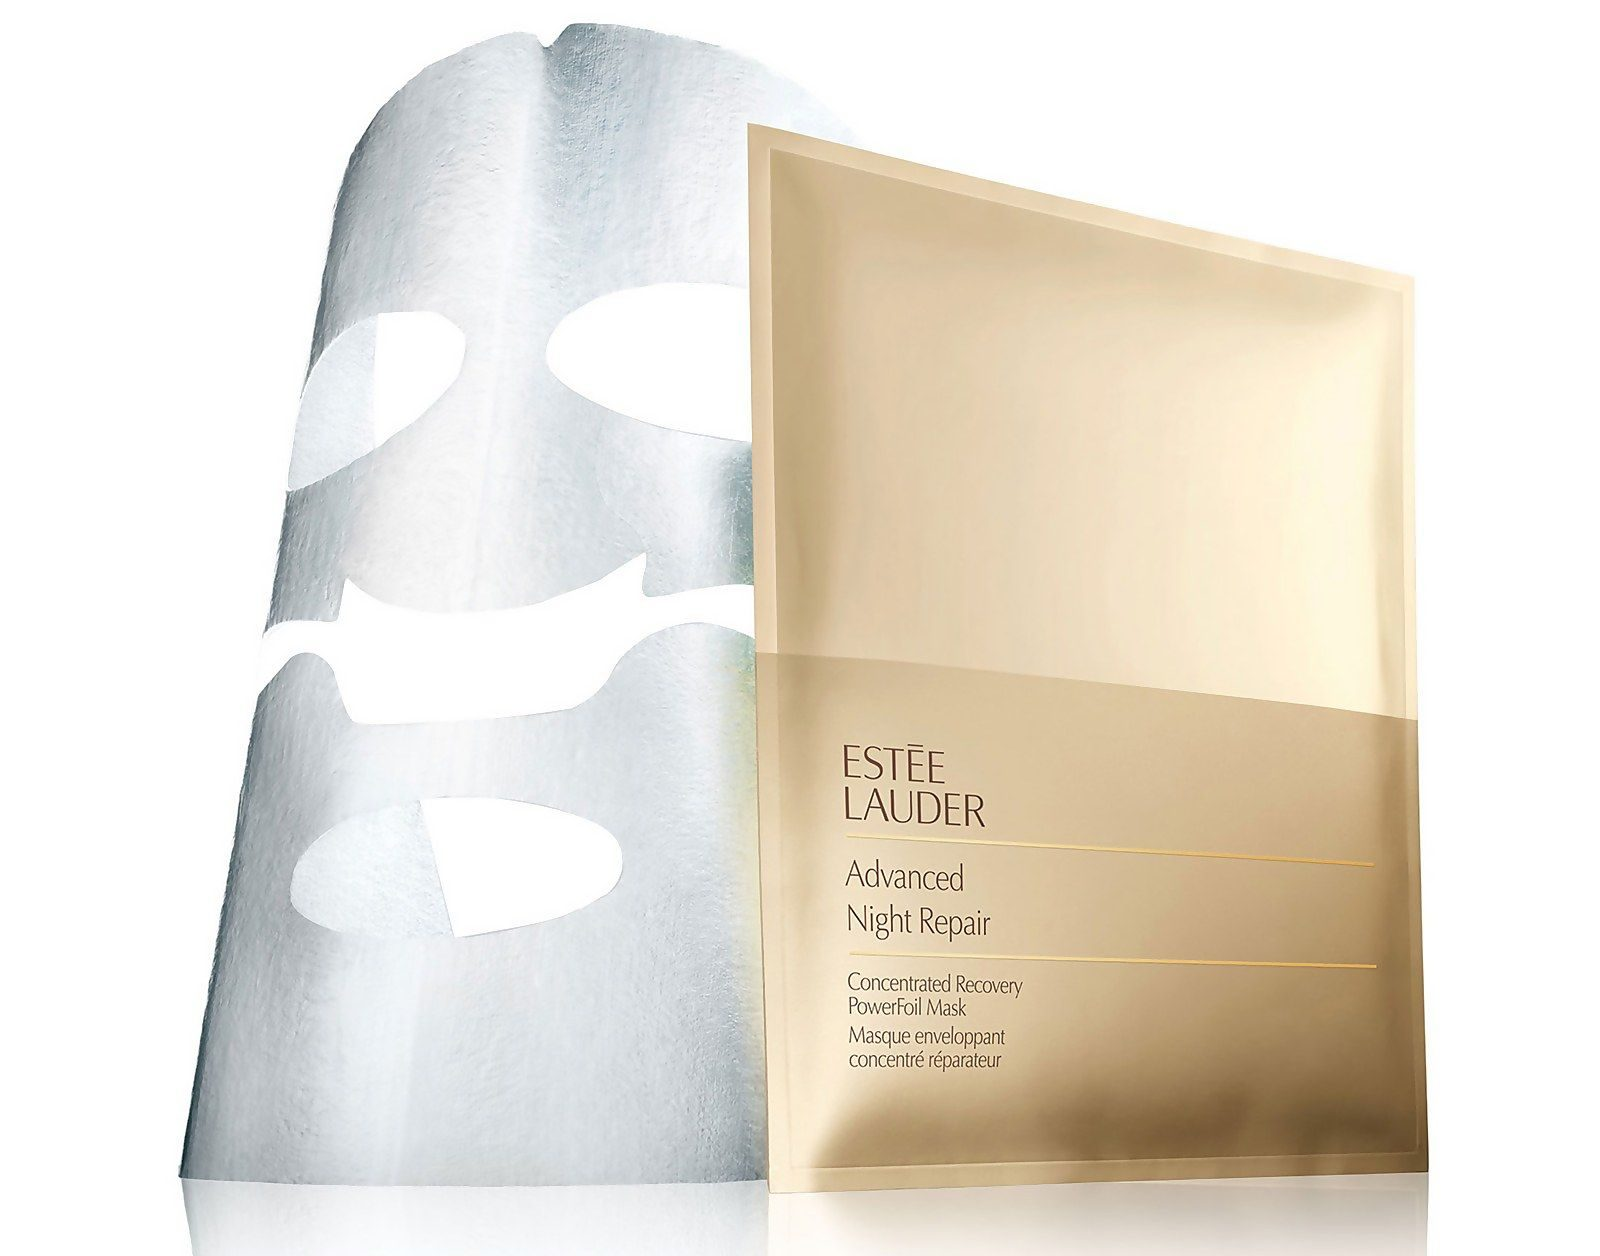 My Celebrity Life – Estée Lauder Advanced Night Repair Concentrated Recovery PowerFoil Mask 4 masks